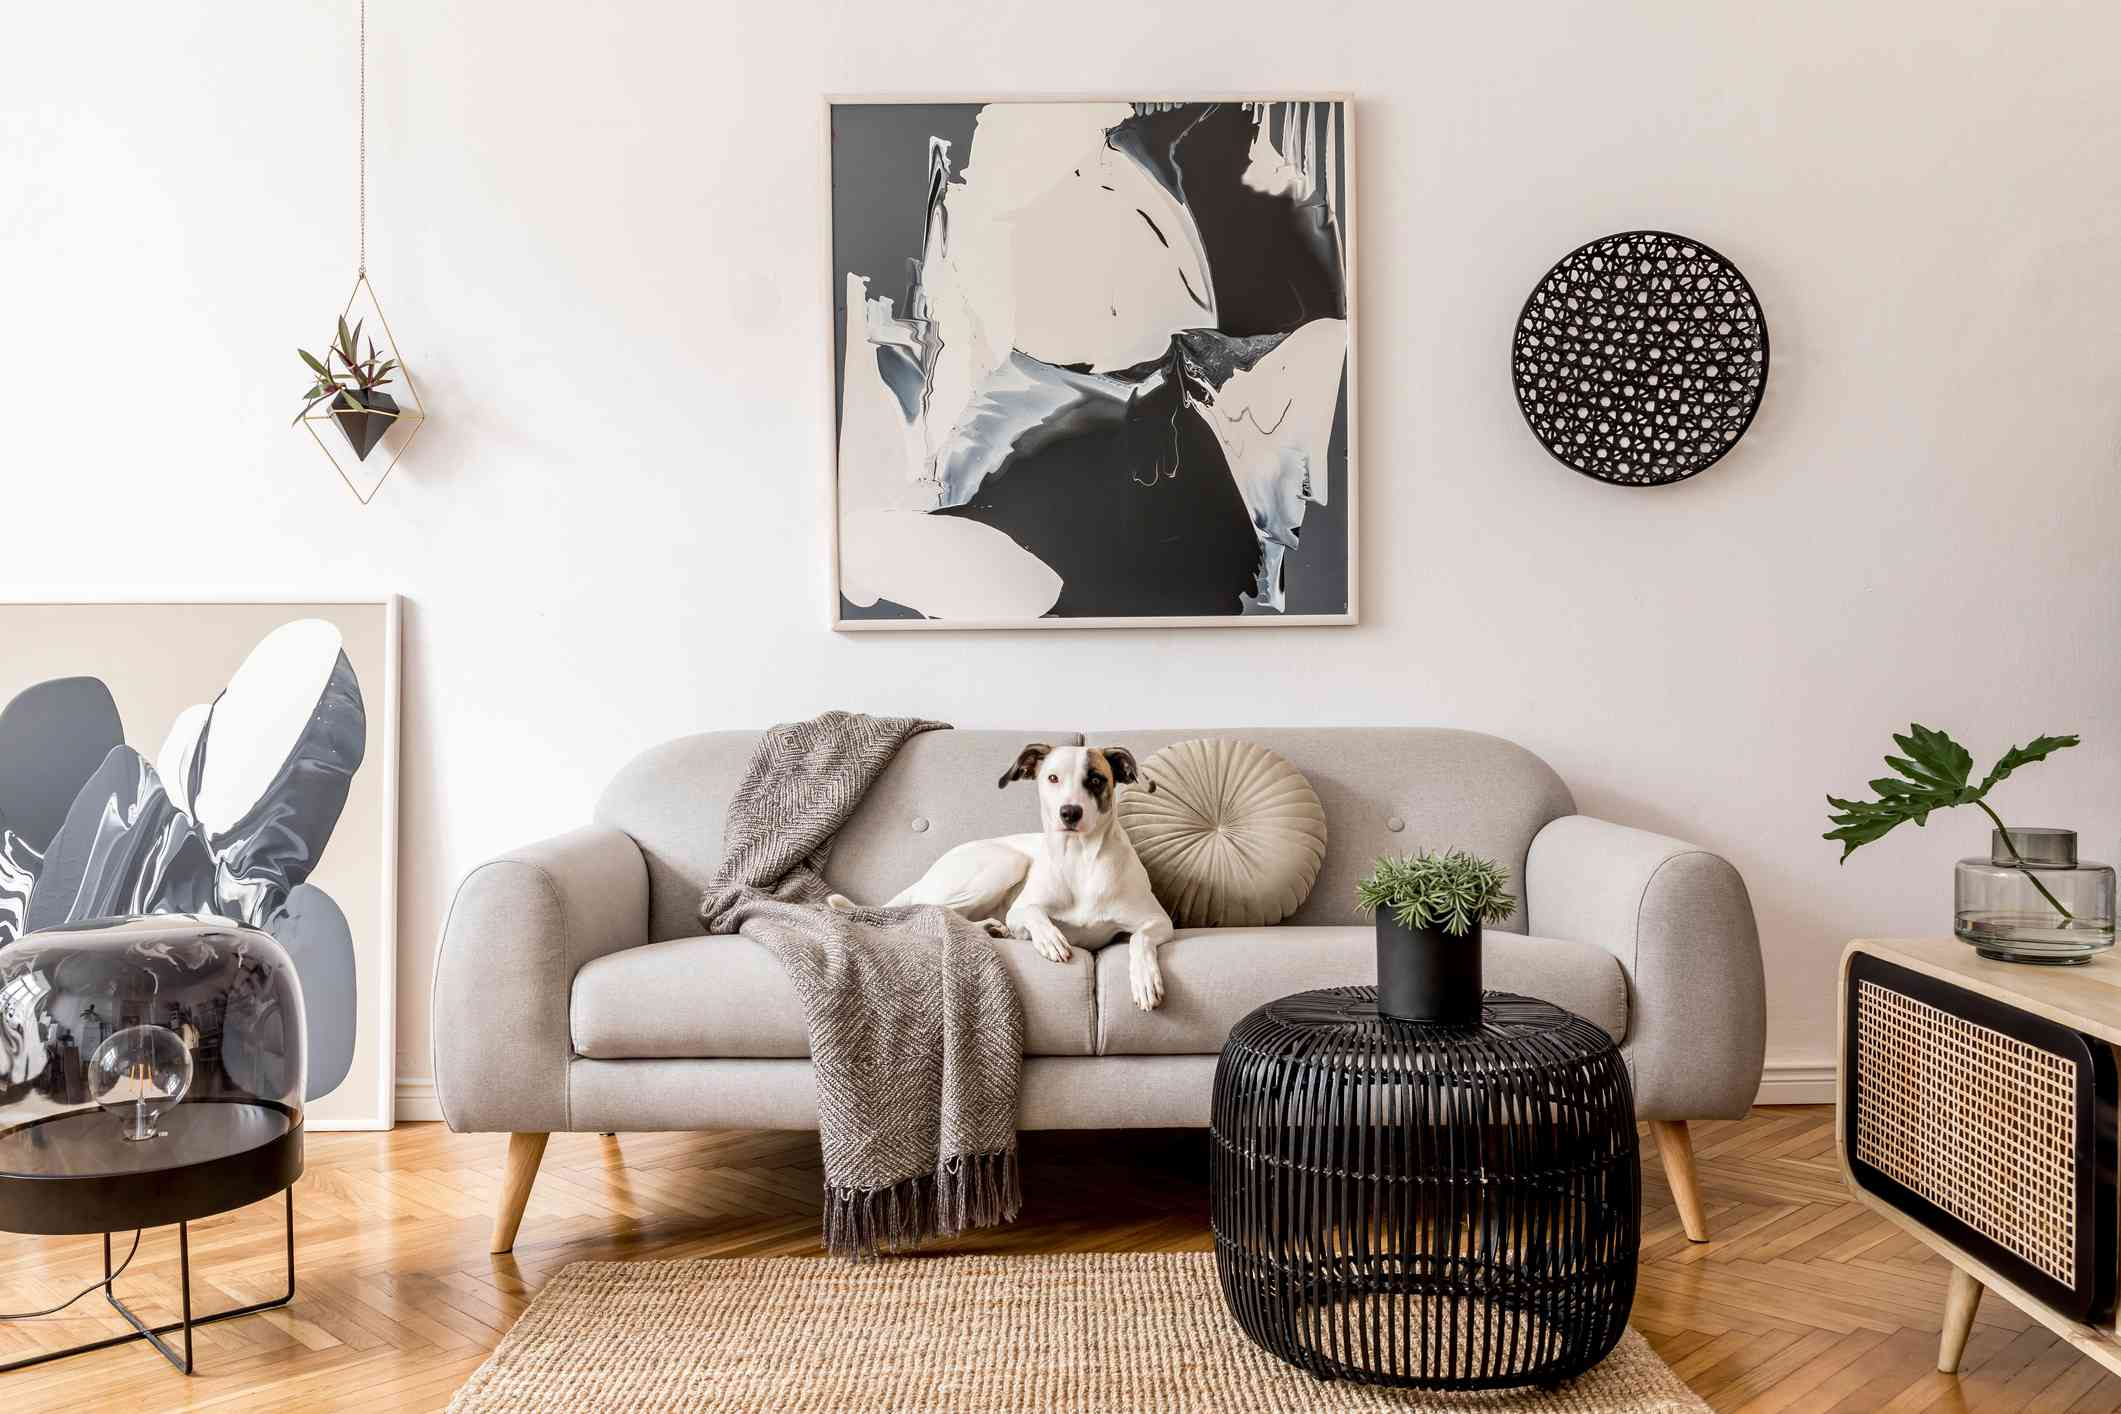 Stylish and scandinavian living room interior of modern apartment with gray sofa, design wooden commode, black table, lamp, abstrac paintings on the wall. Beautiful dog lying on the couch. Home decor.